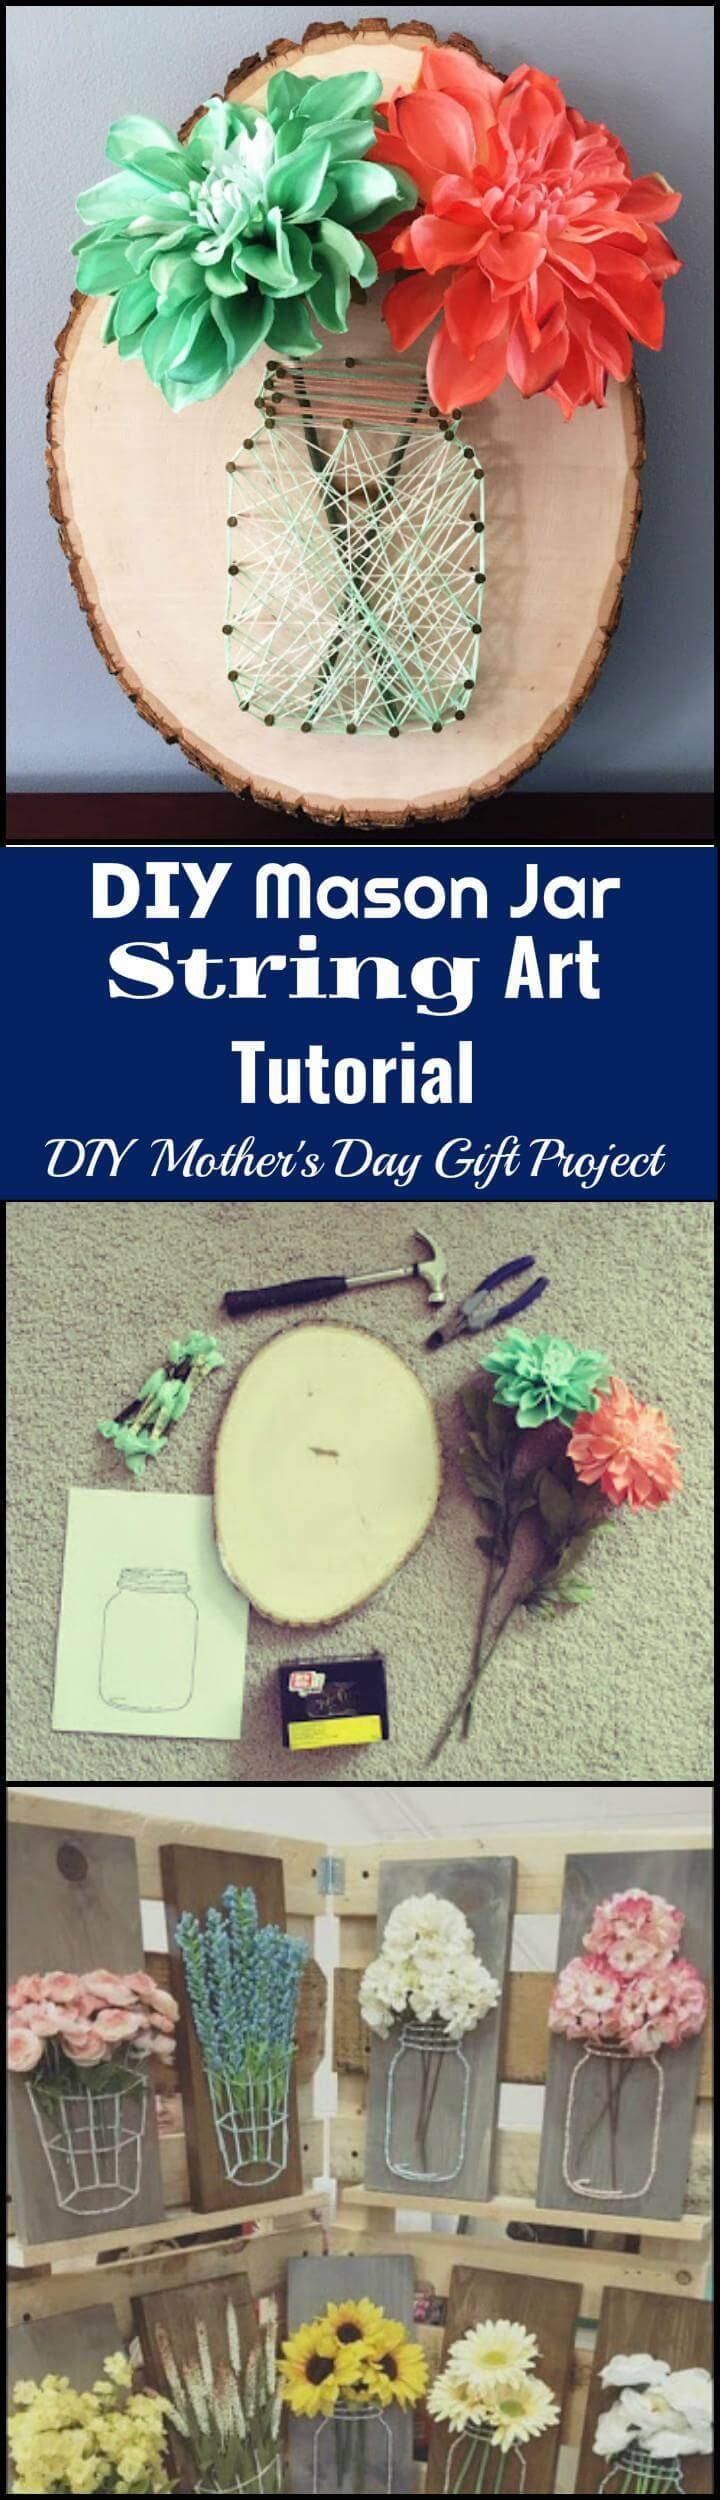 DIY Mason jar string art Mother's Day gift idea